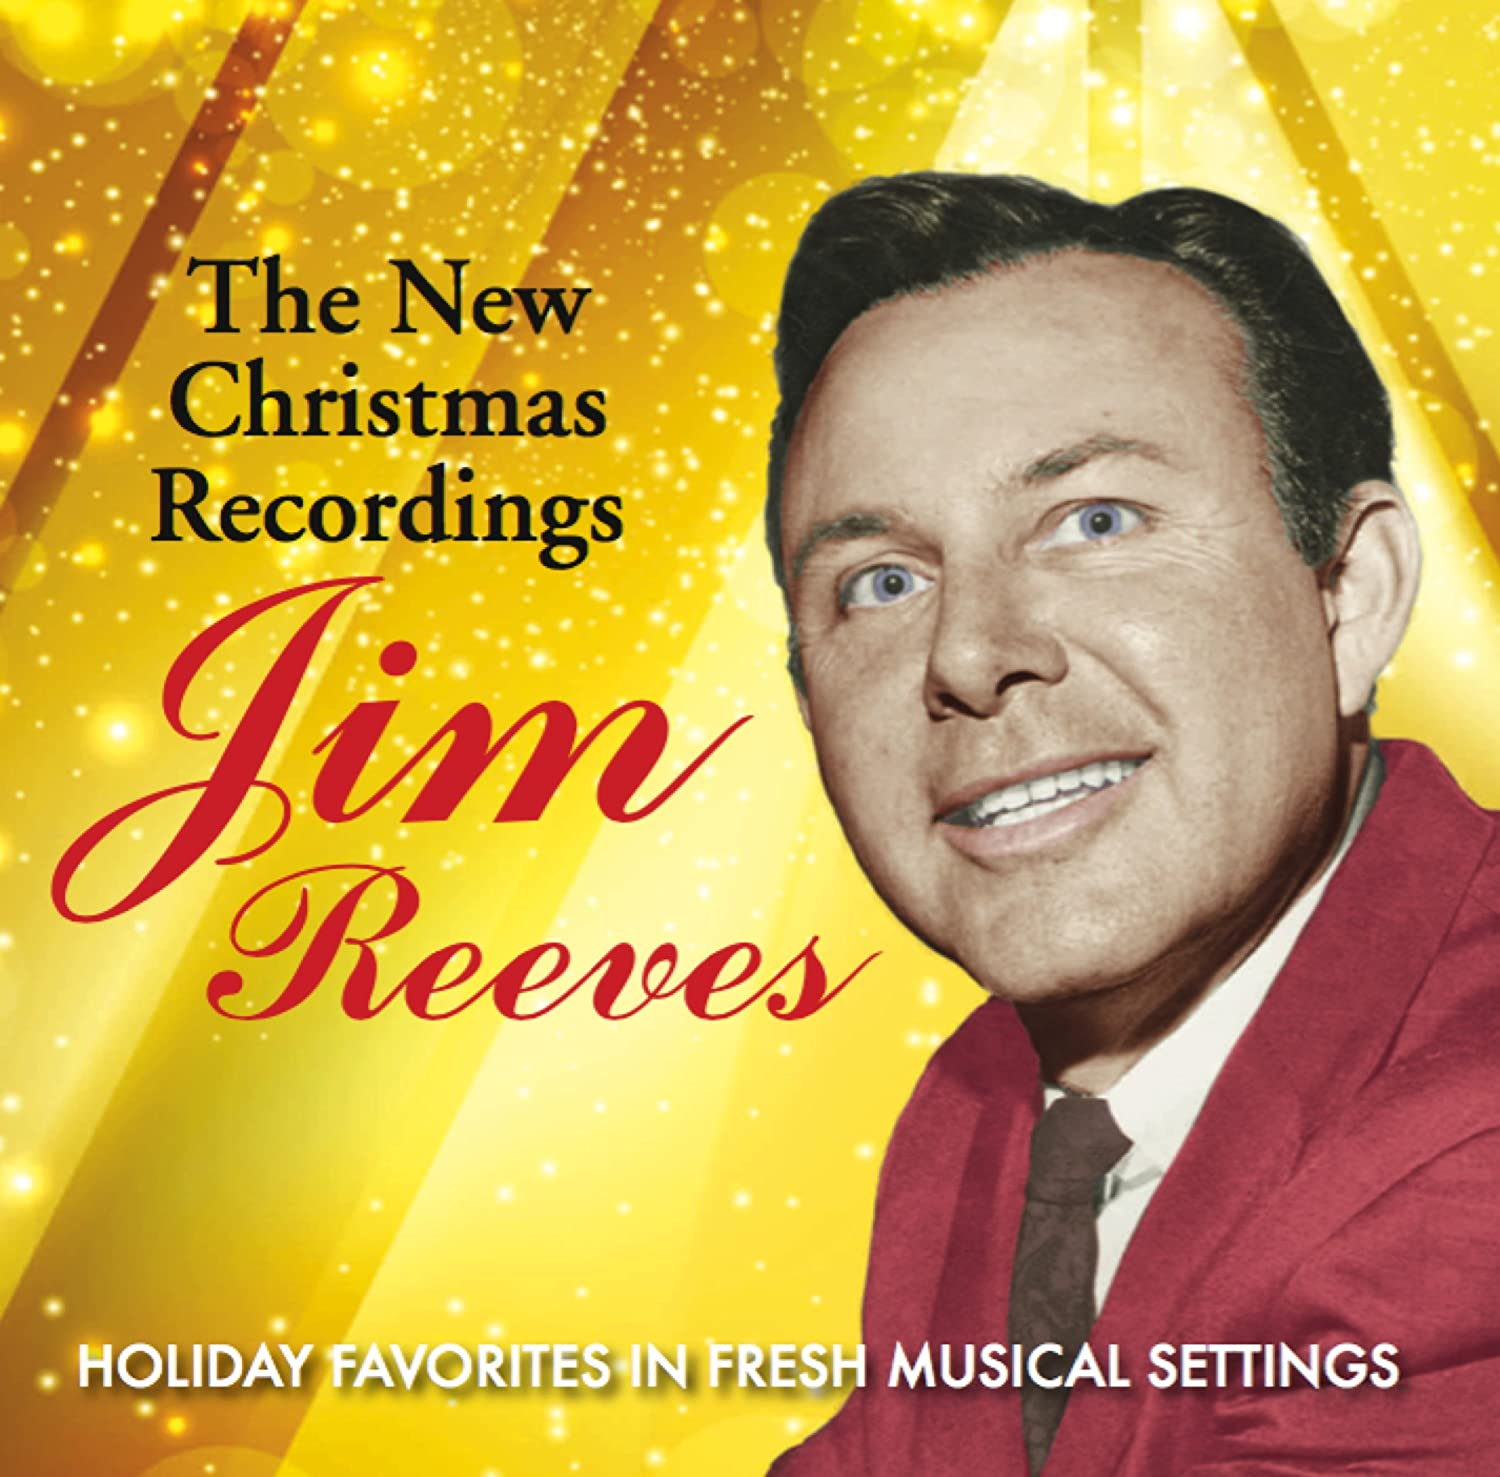 Jim Reeves - Jim Reeves: The New Christmas Recordings - Amazon.com Music